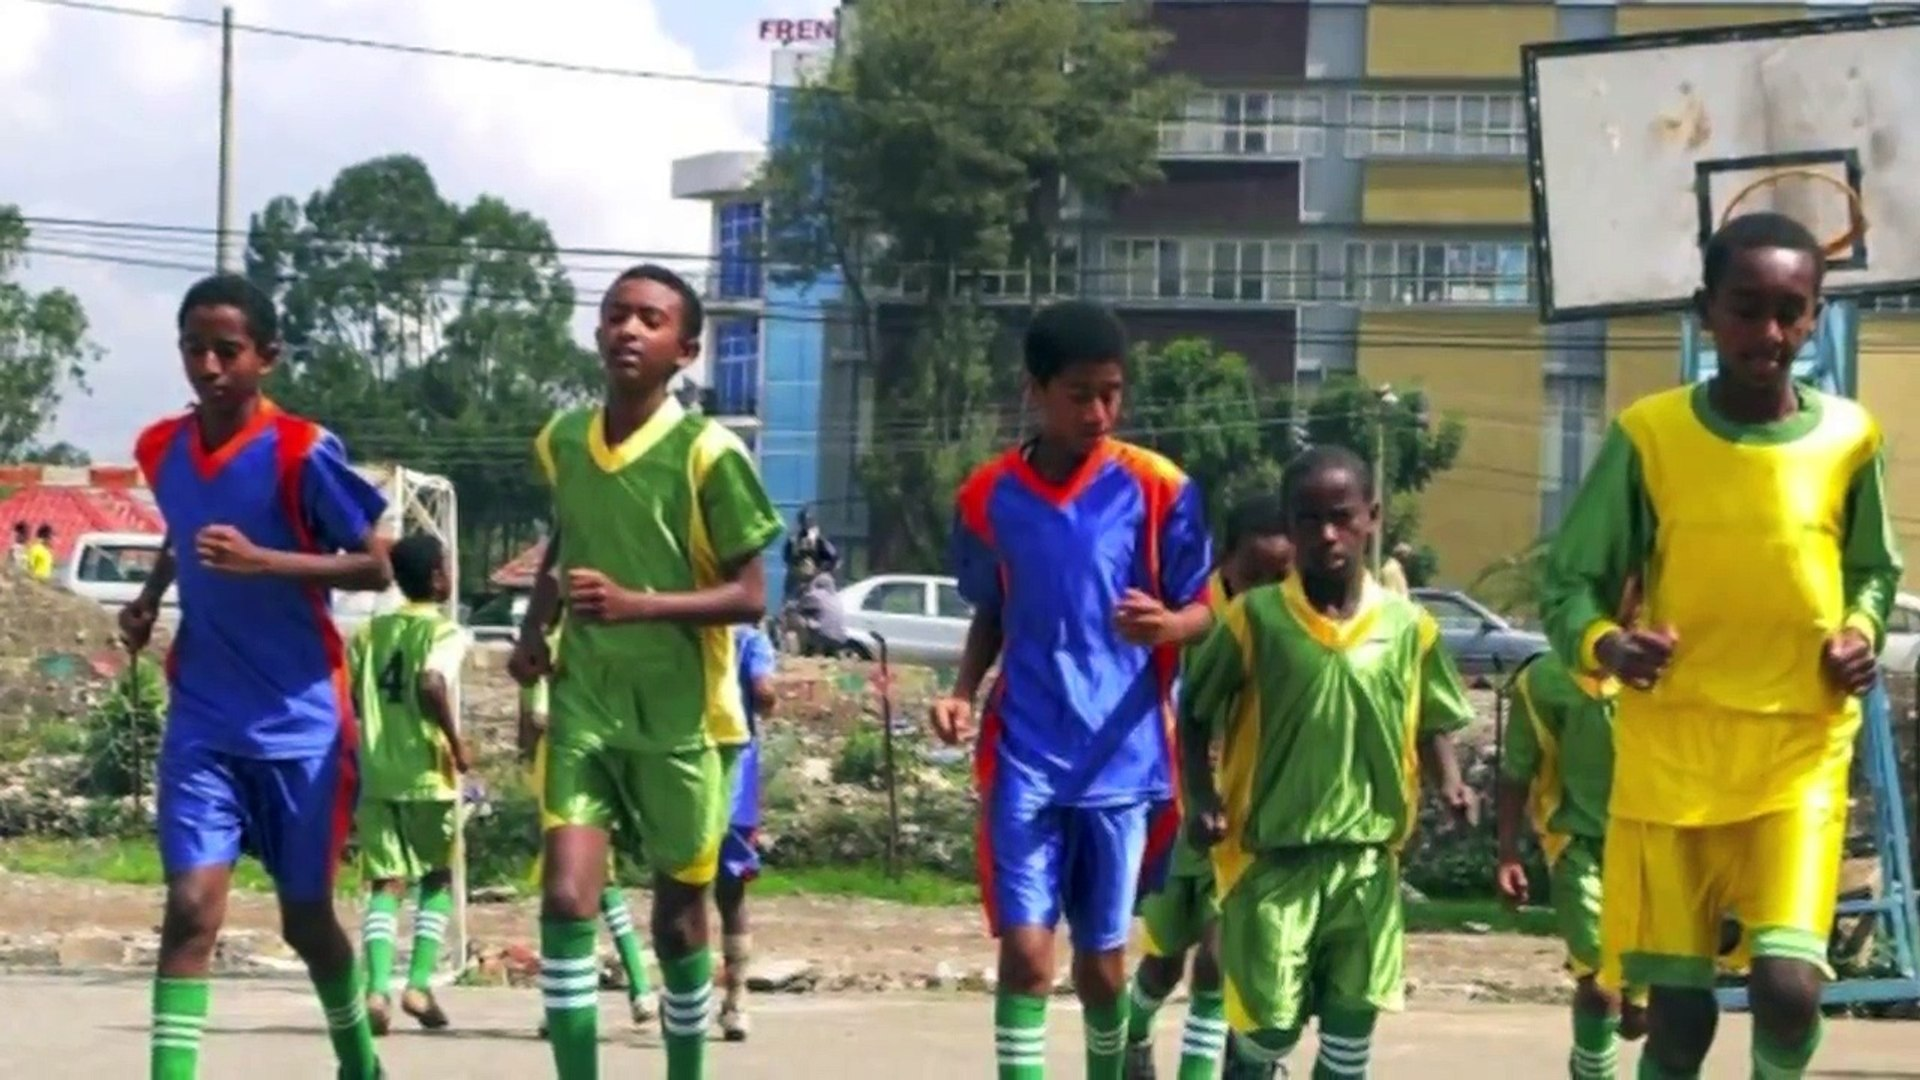 OUR STORIES | Young Ethiopian American uses soccer to give back to Ethiopia